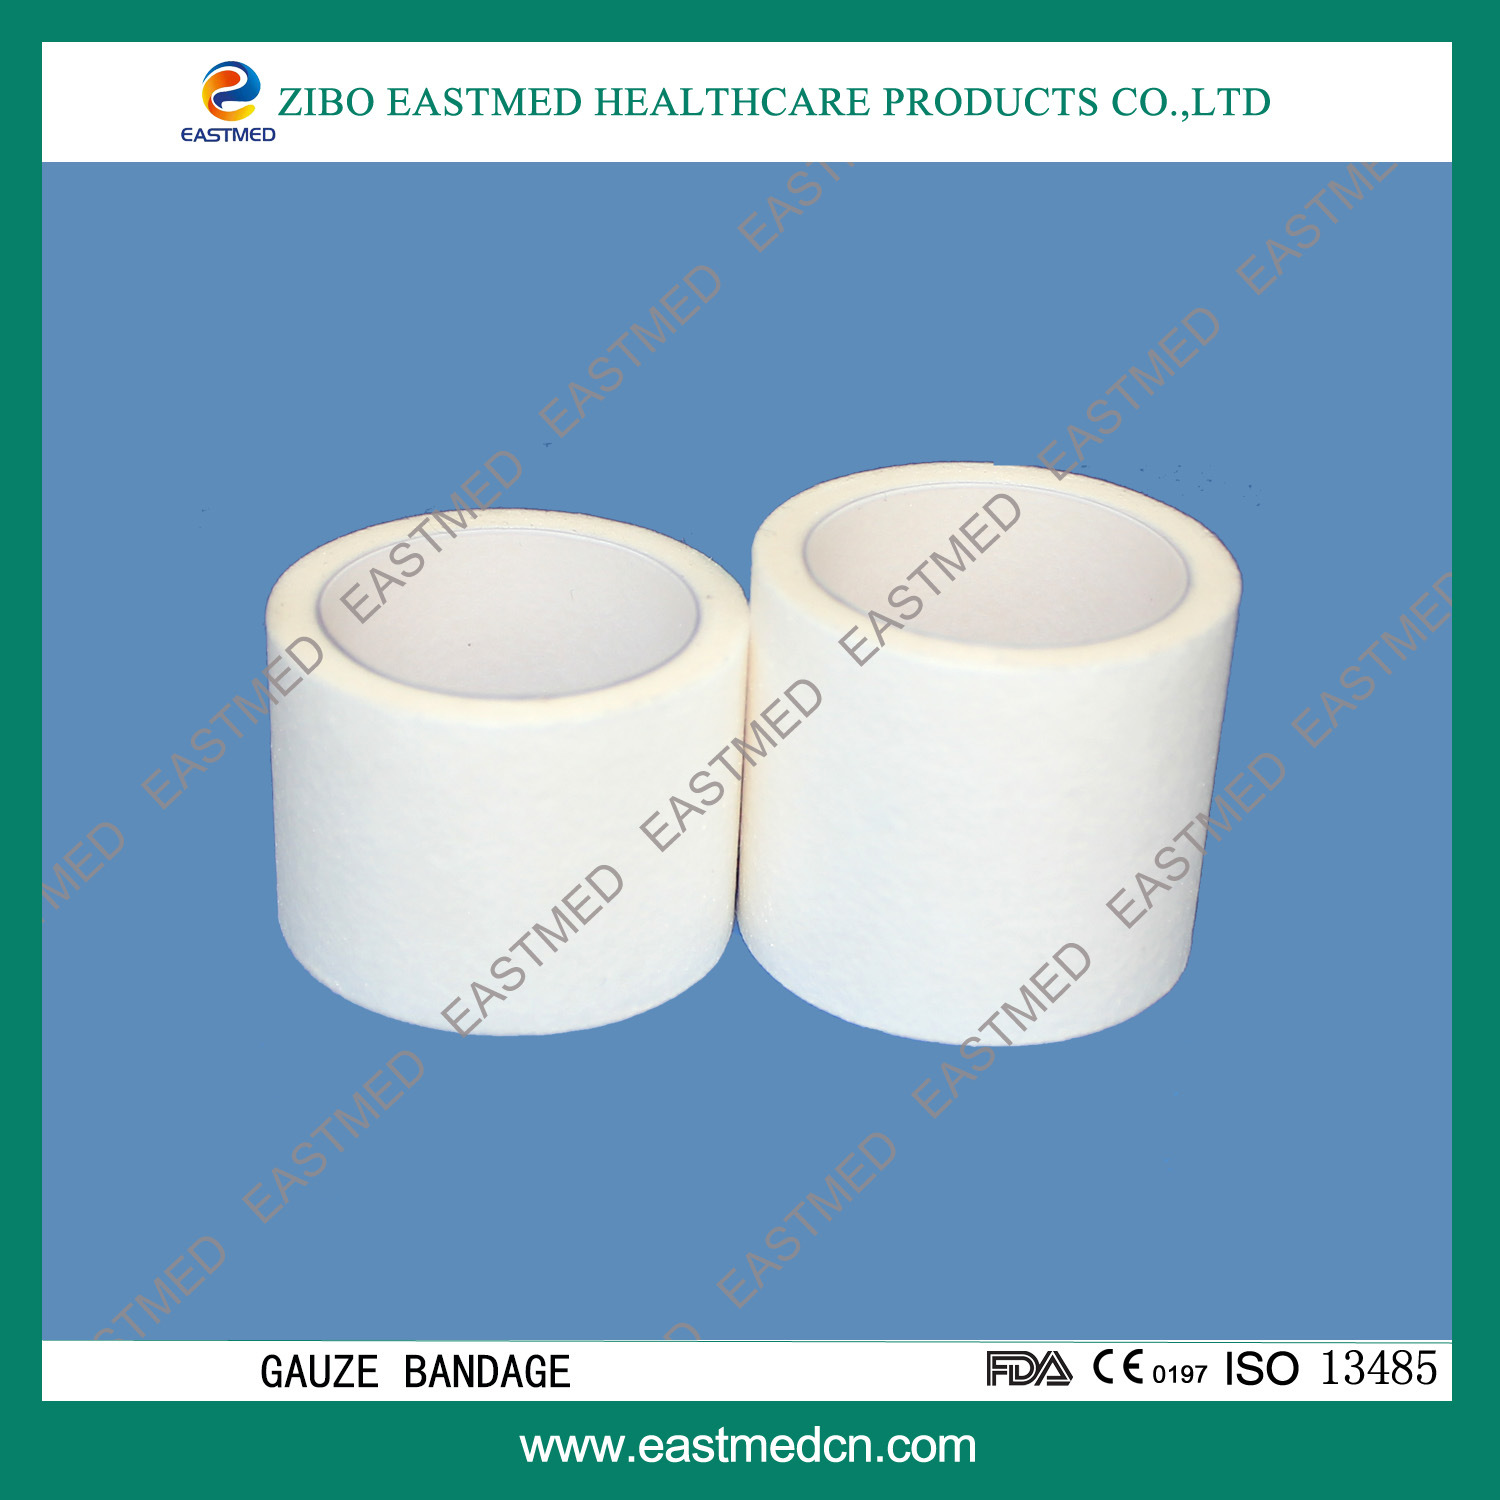 Disposable Sterile Safety Gauze Swab for Single Use for Medical